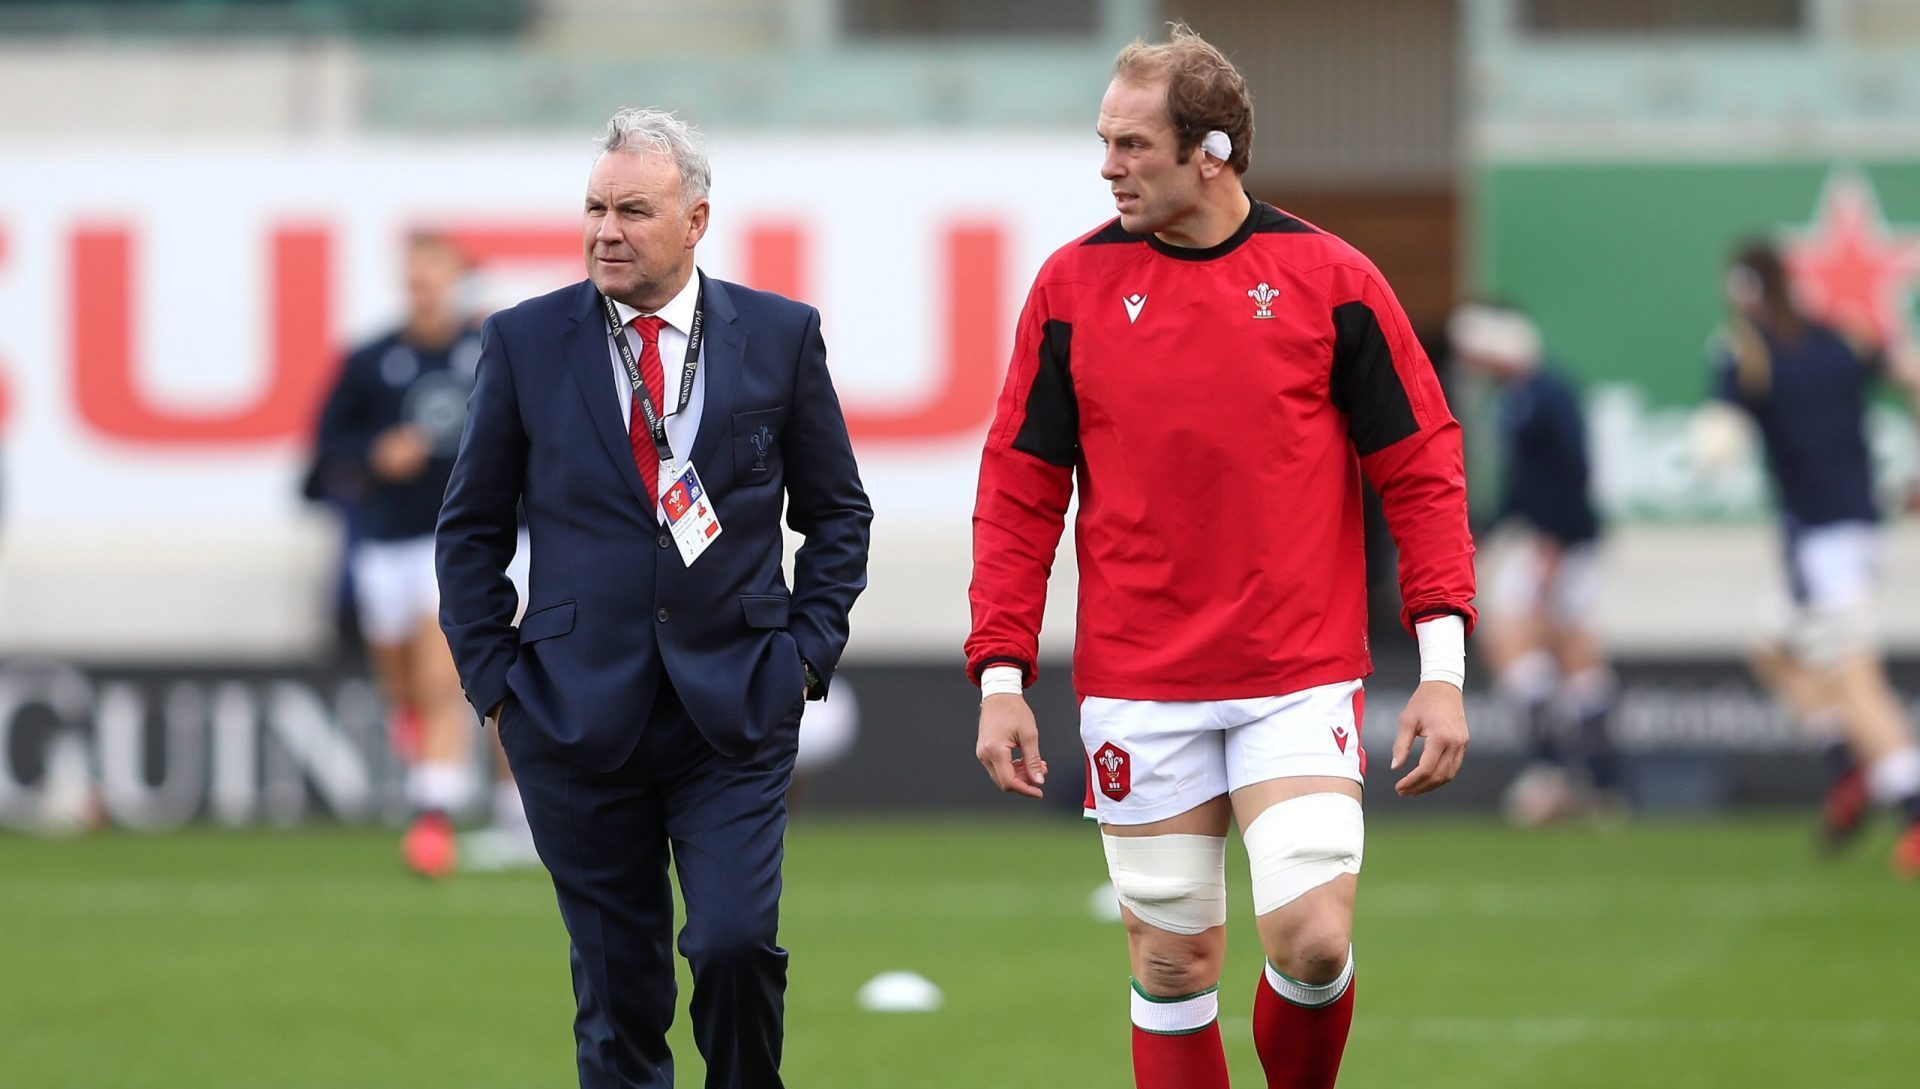 The salient point Alun Wyn Jones just made about the 12 years under Gatland